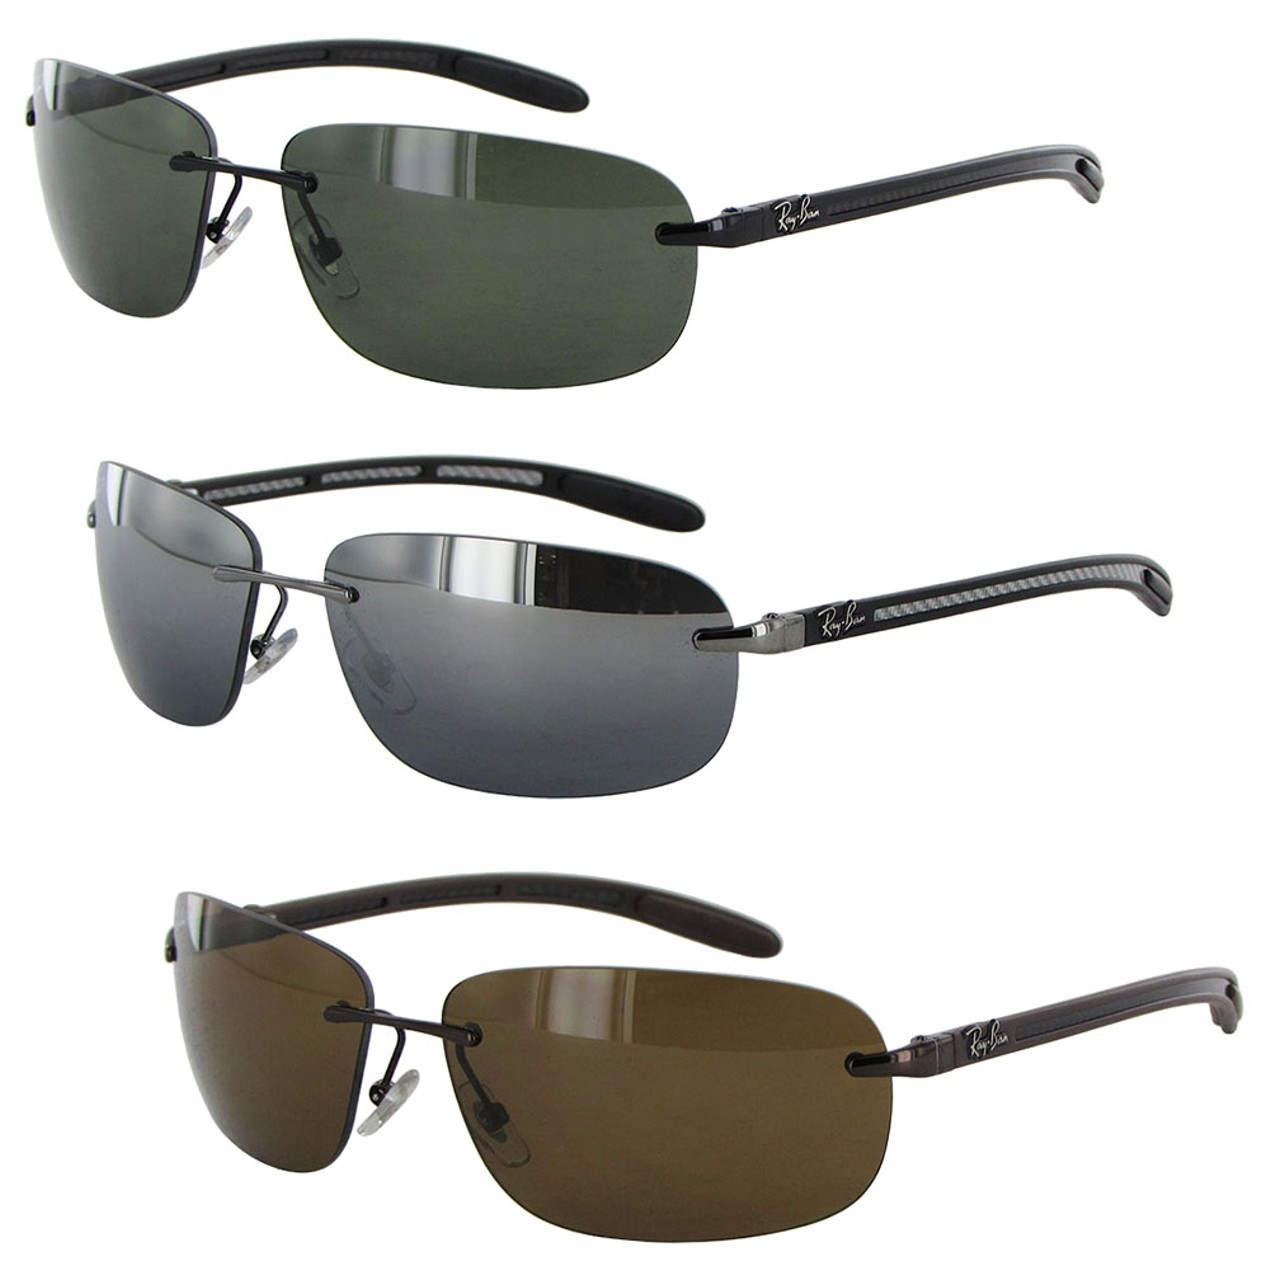 7033417d70 ... closeout ray ban tech mens 8303 carbon fibre rectangle polarized  sunglasses cd62d d5c1b